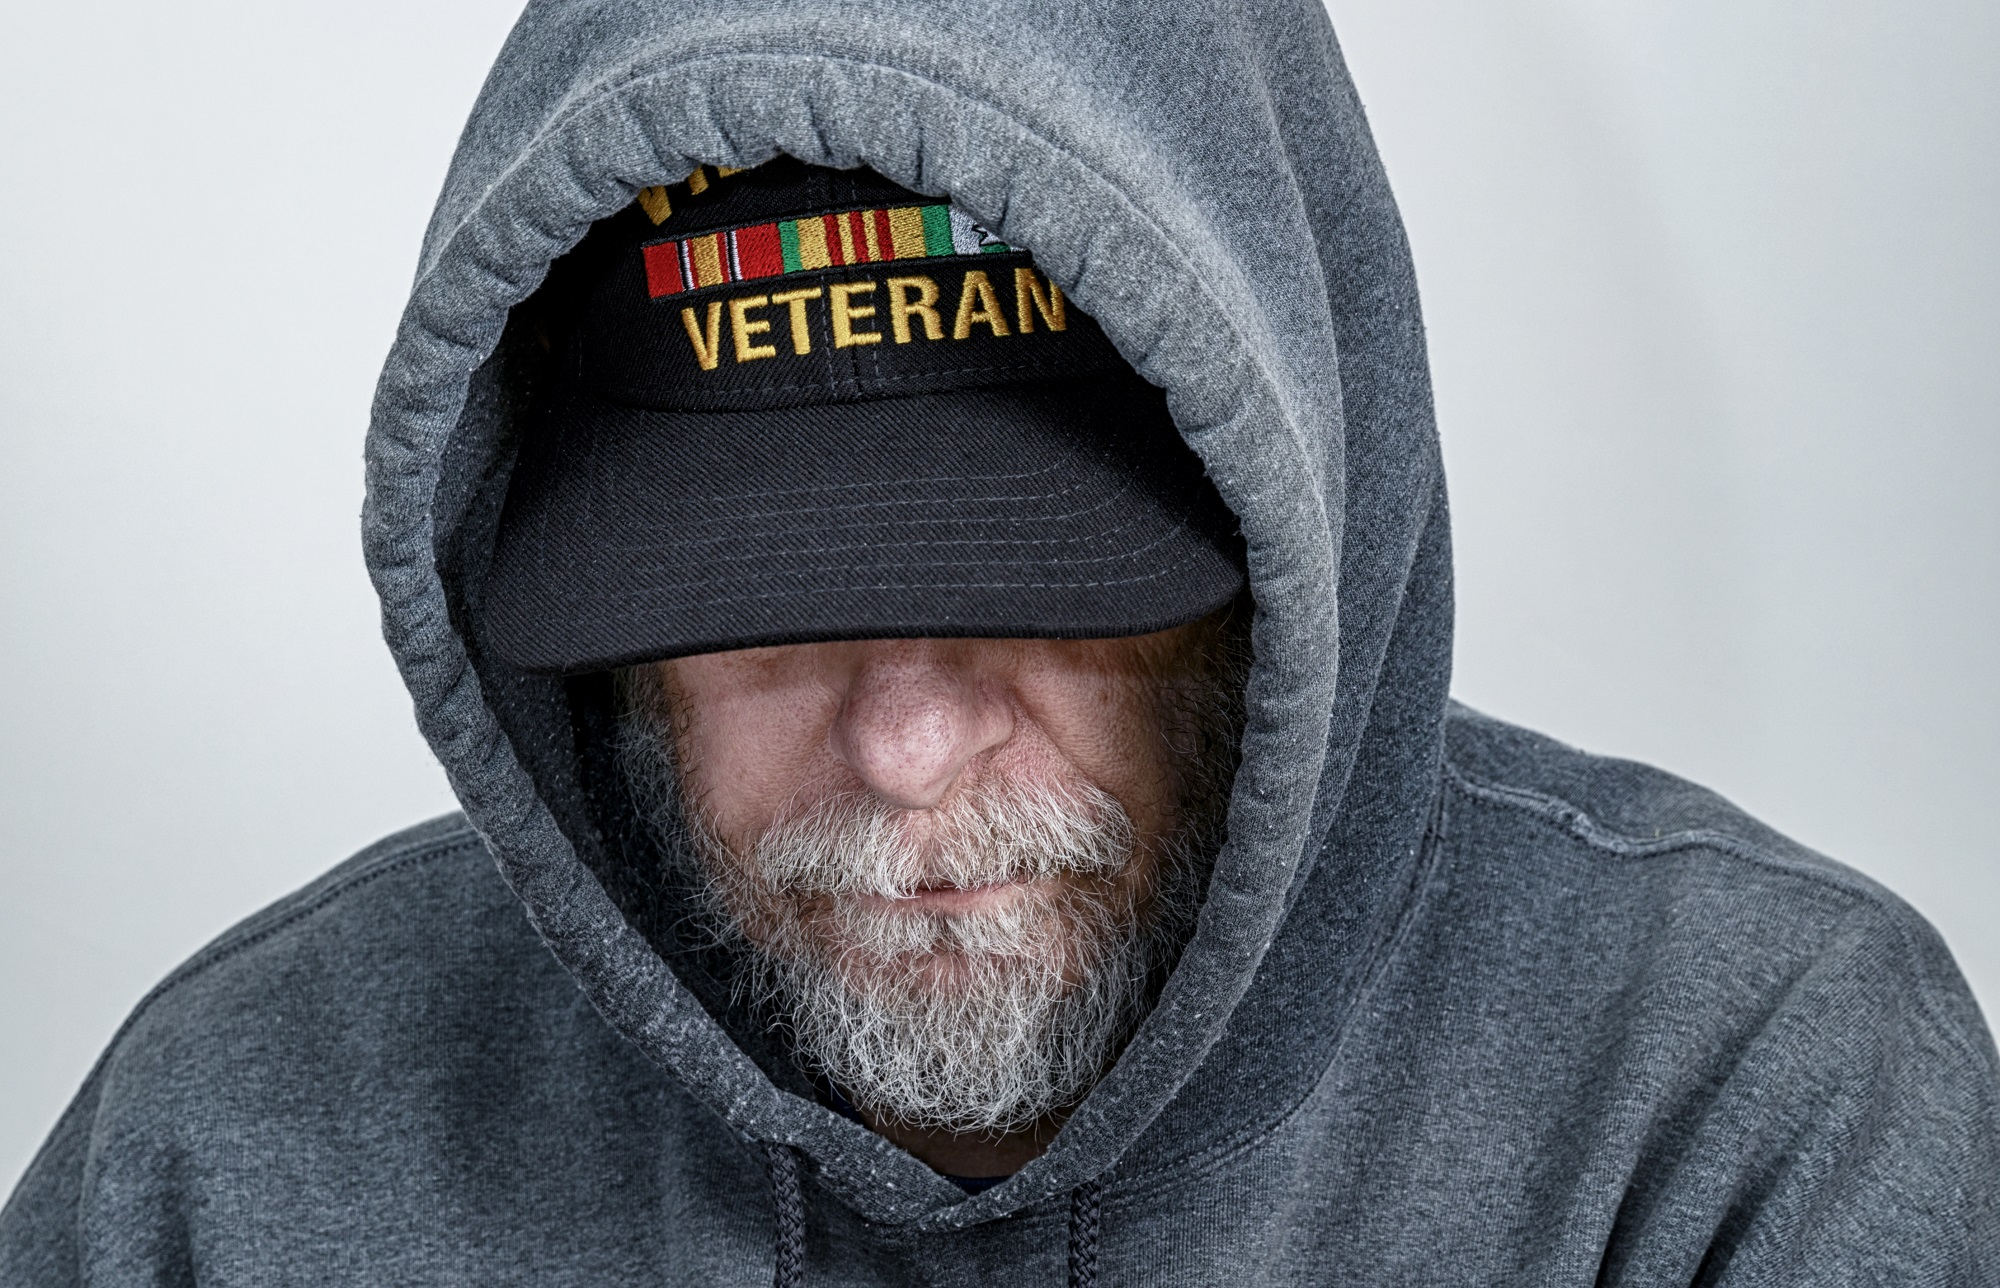 Improvement in PTSD Symptoms Associated With Lower Risk for